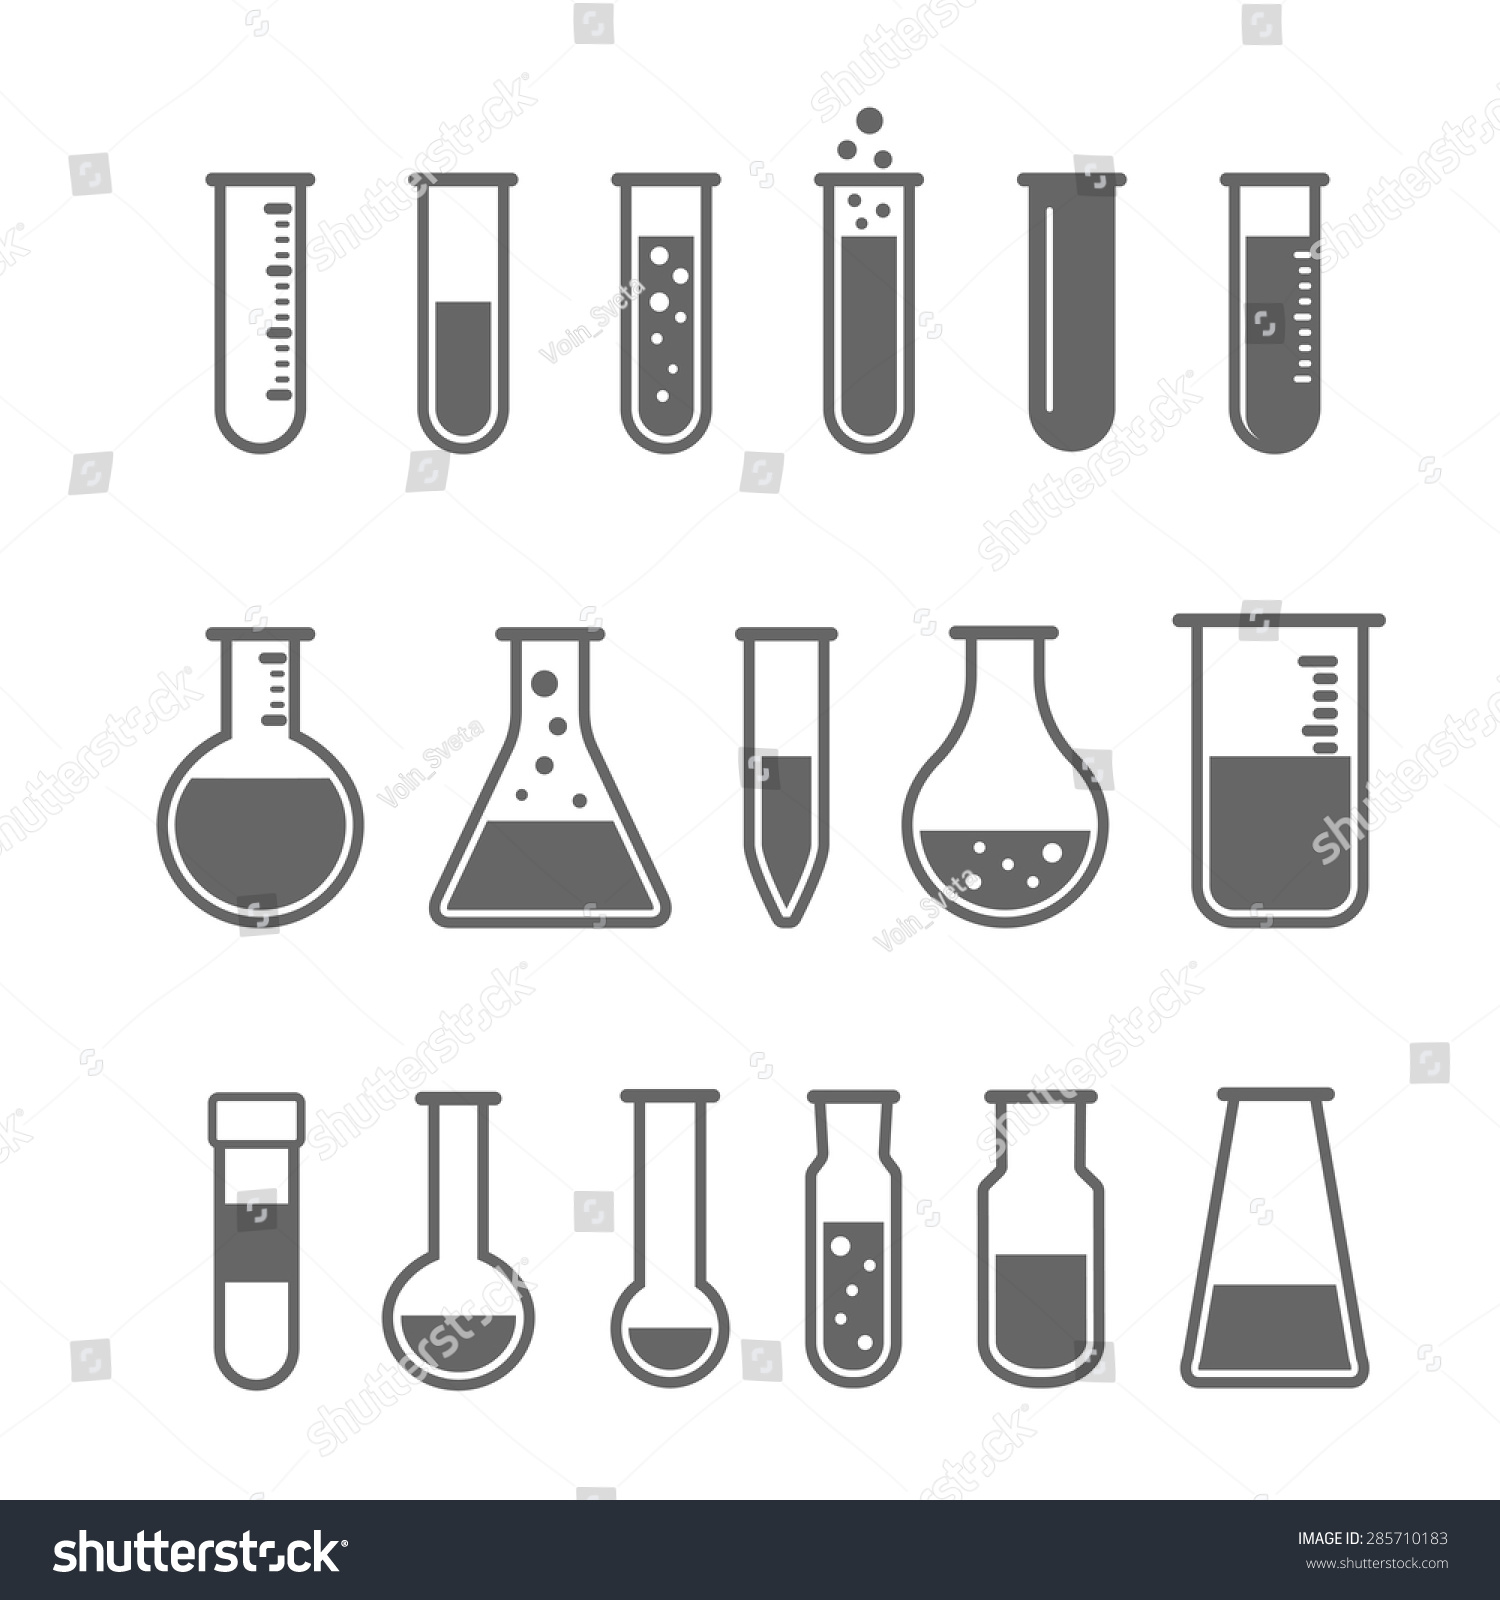 Chemical Test Tube Pictogram Icons Set Stock Vector